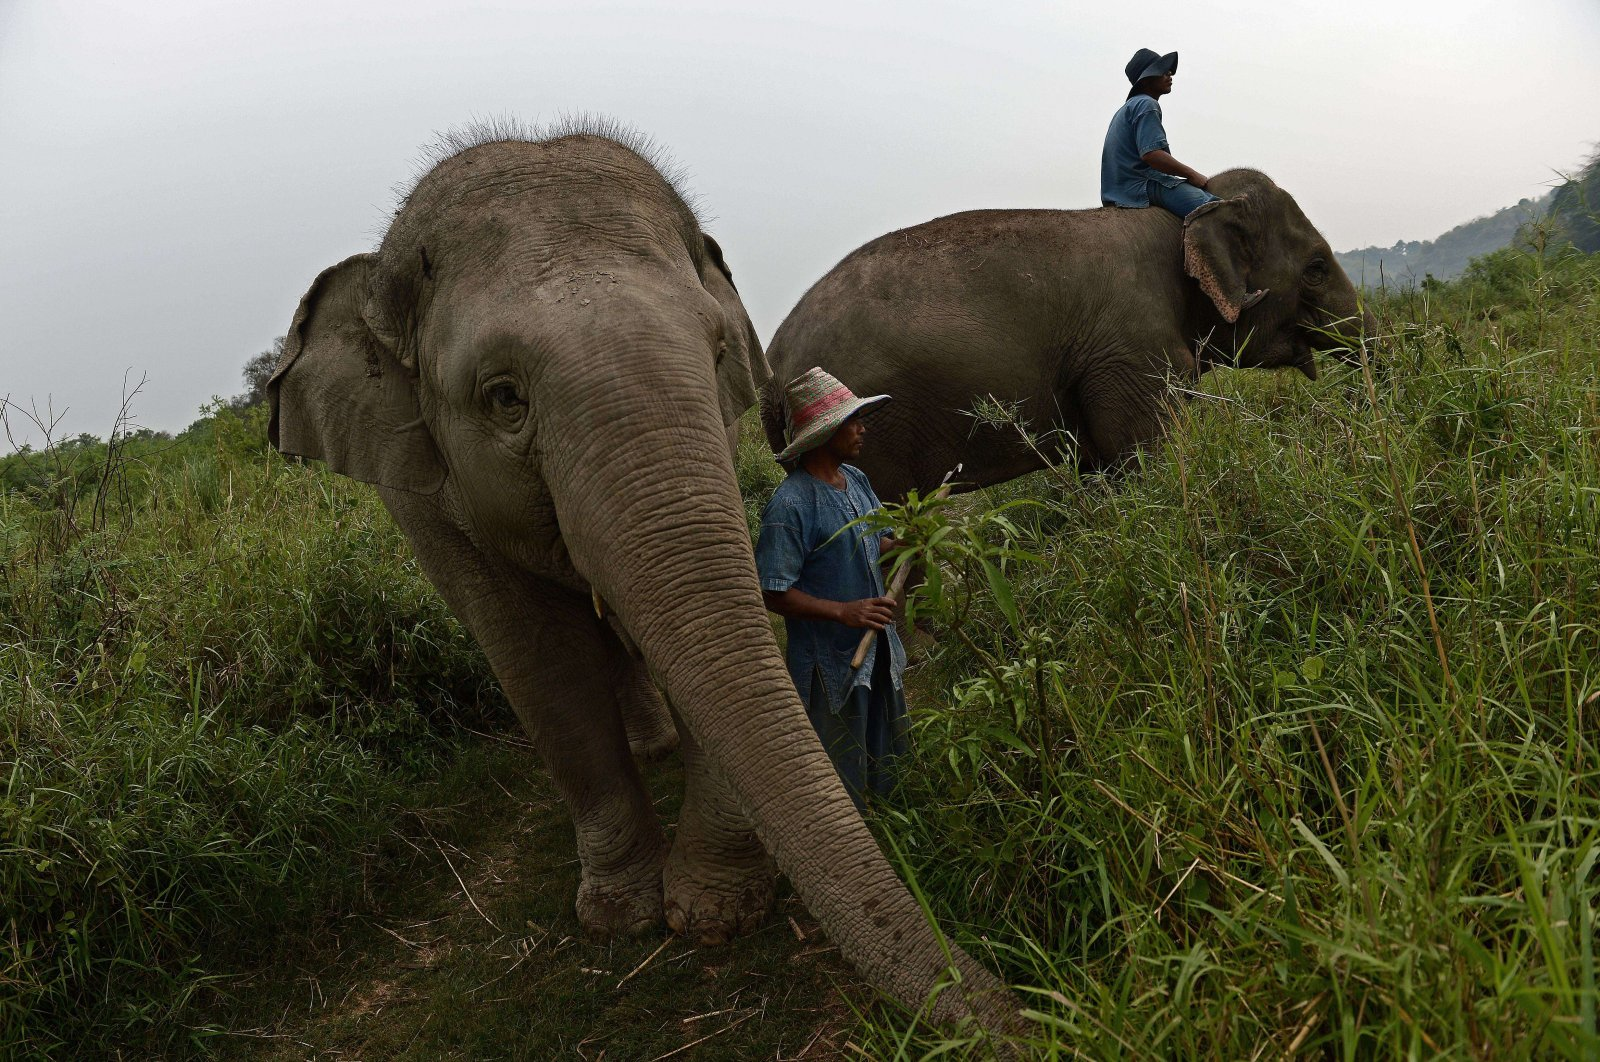 Mahouts riding elephants through a grassland at the luxury Anantara resort, home to the Golden Triangle Asian Elephant Foundation, in the Thai northern town of Chiang Saen, near the border with Myanmar and Laos, April 9, 2015. (AFP Photo)